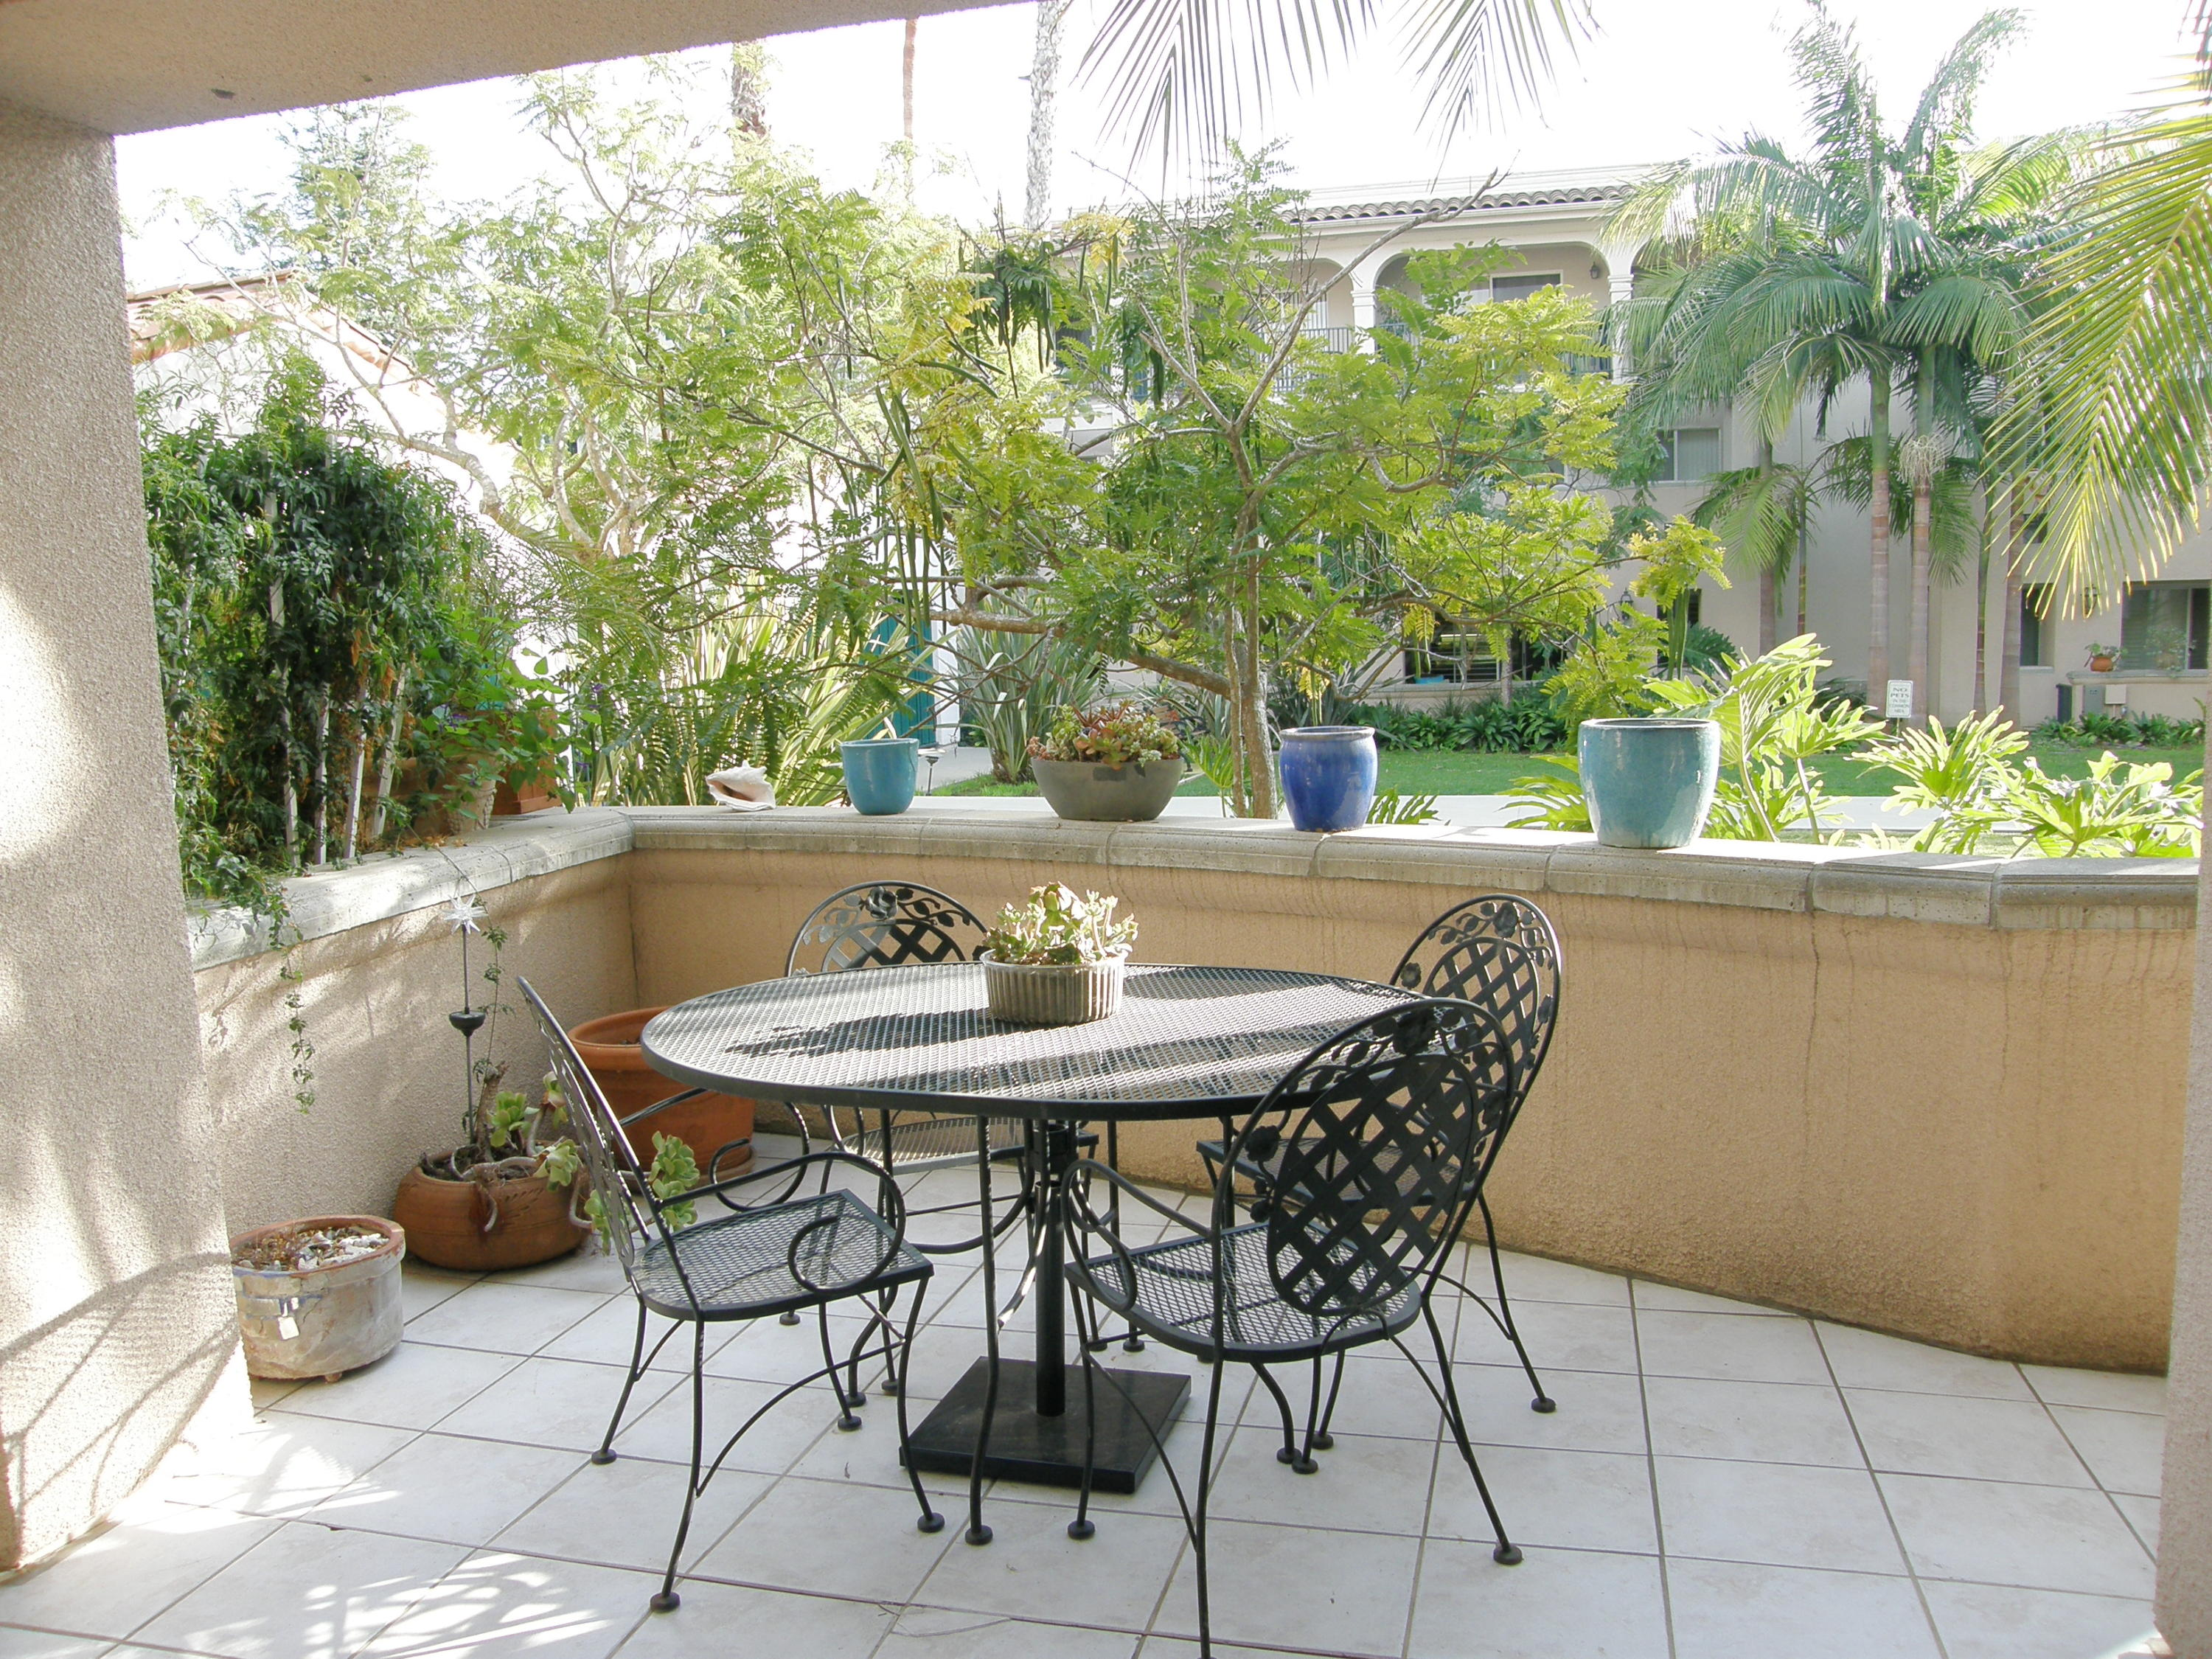 Property photo for 205 Por La Mar Cir Santa Barbara, California 93103 - 16-13